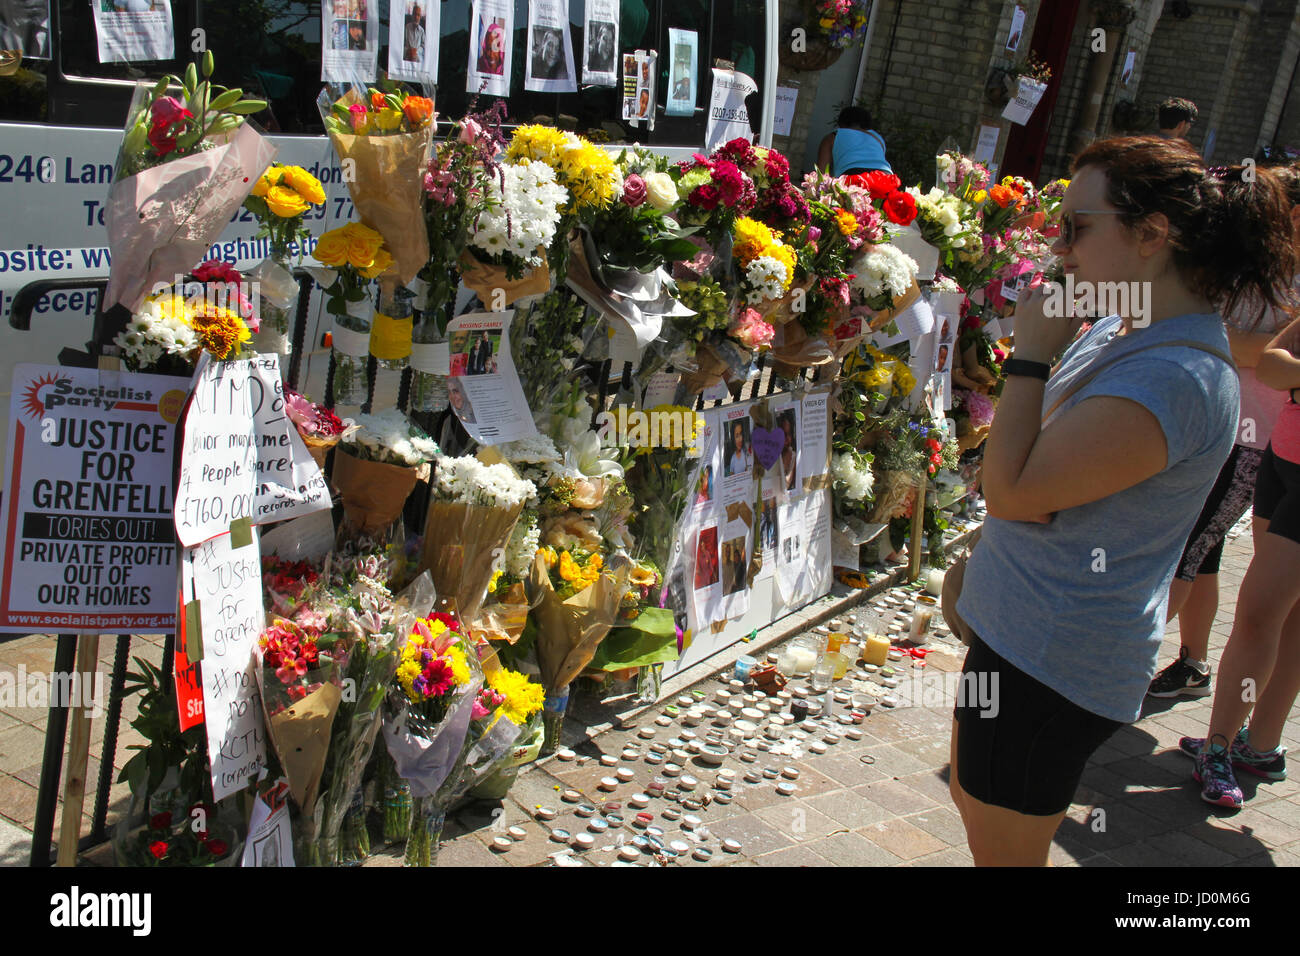 London, UK. 16th June, 2017. A woman seen reading through memorial messages places outside the Notting Hill Methodist - Stock Image